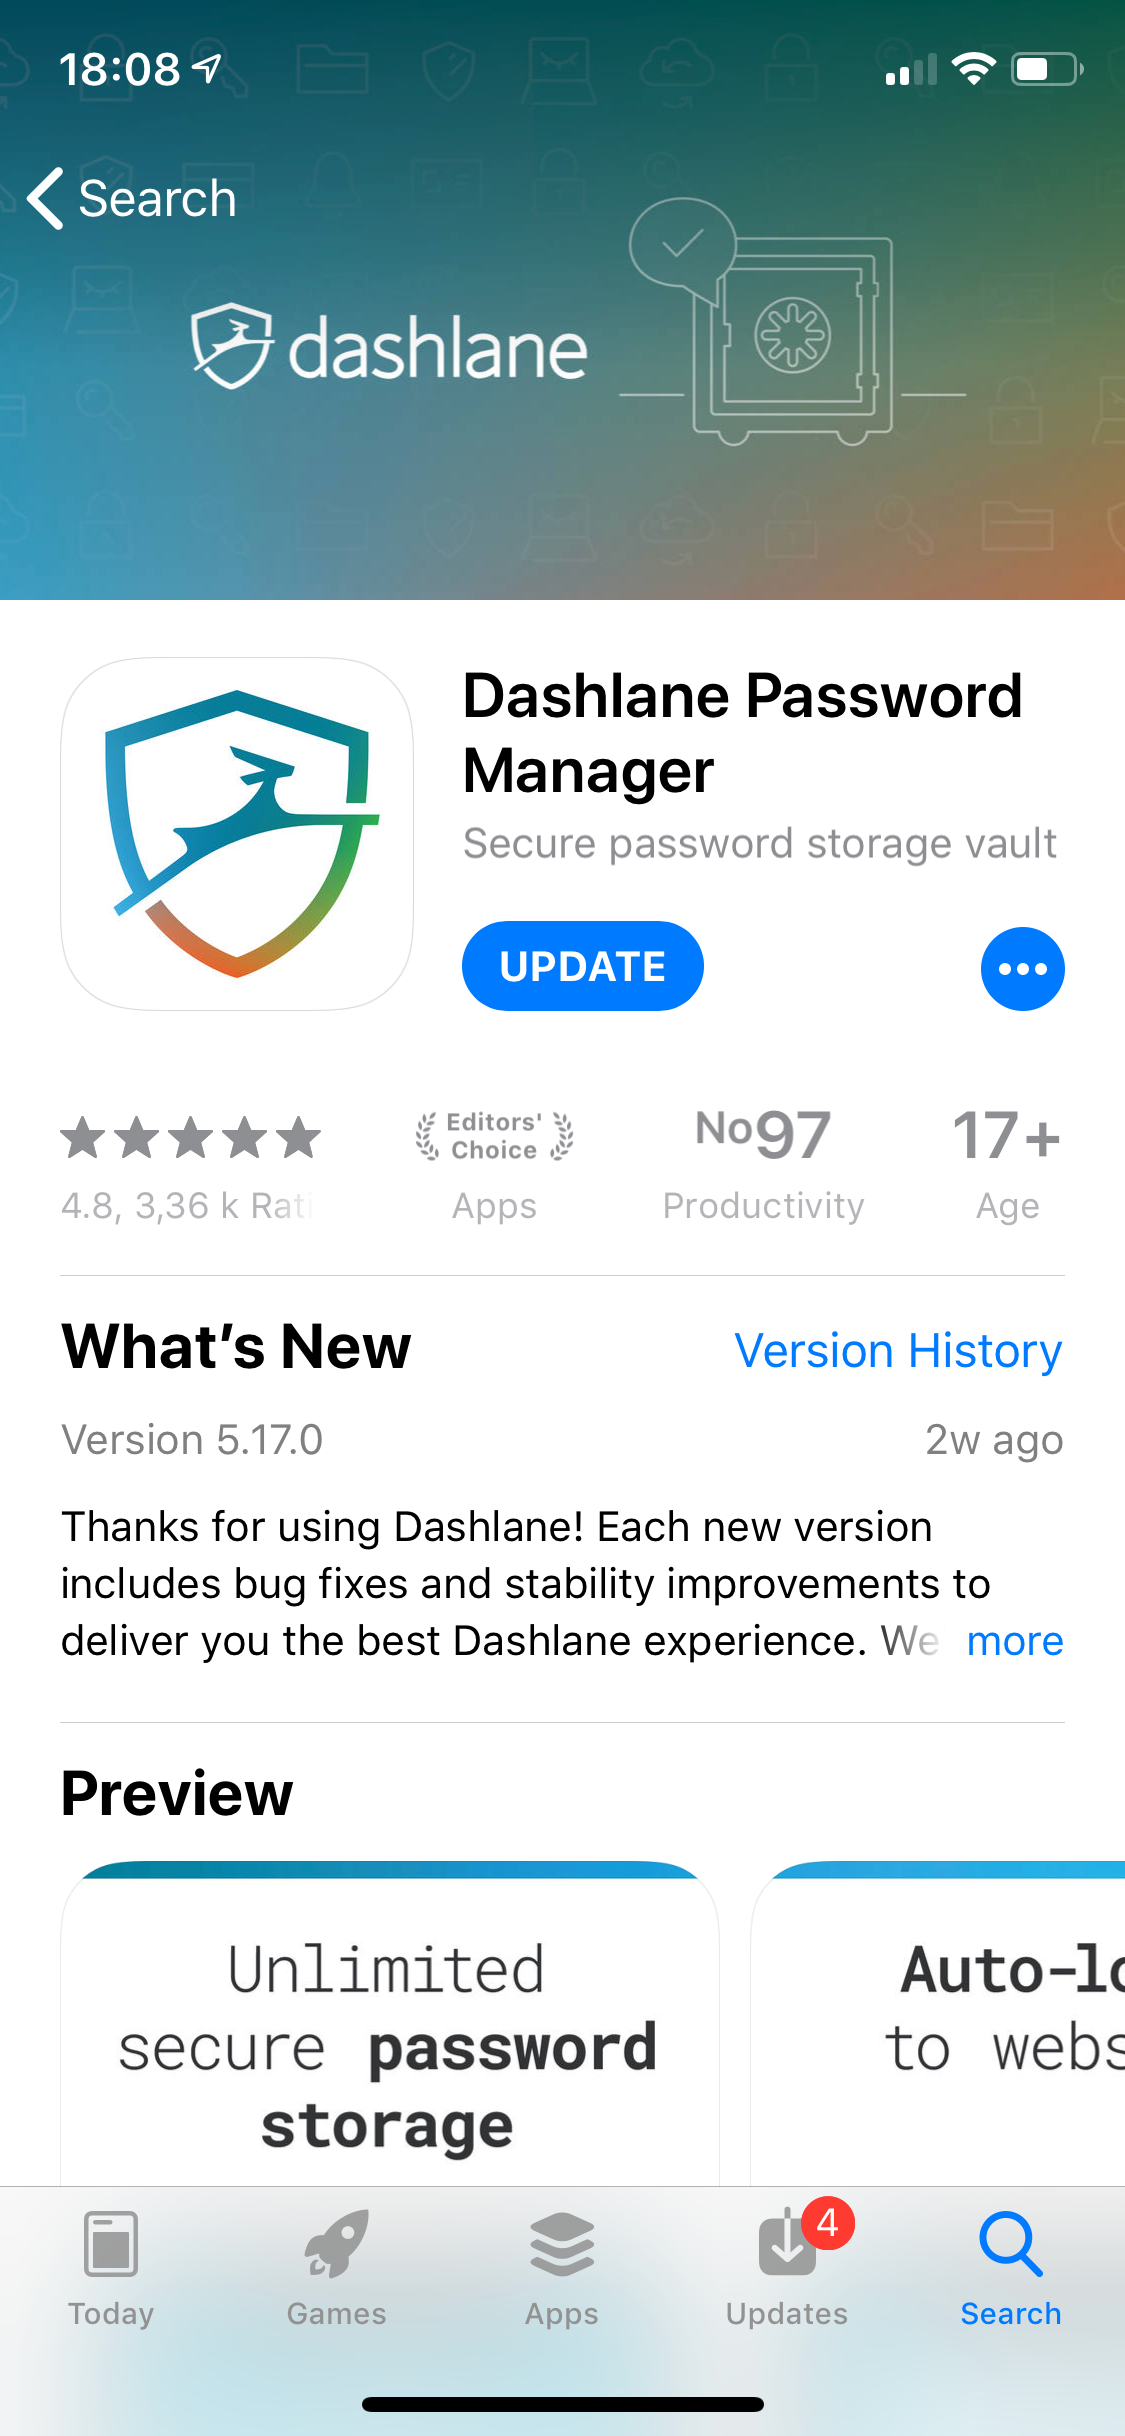 update-dashlane-ios_3x.png